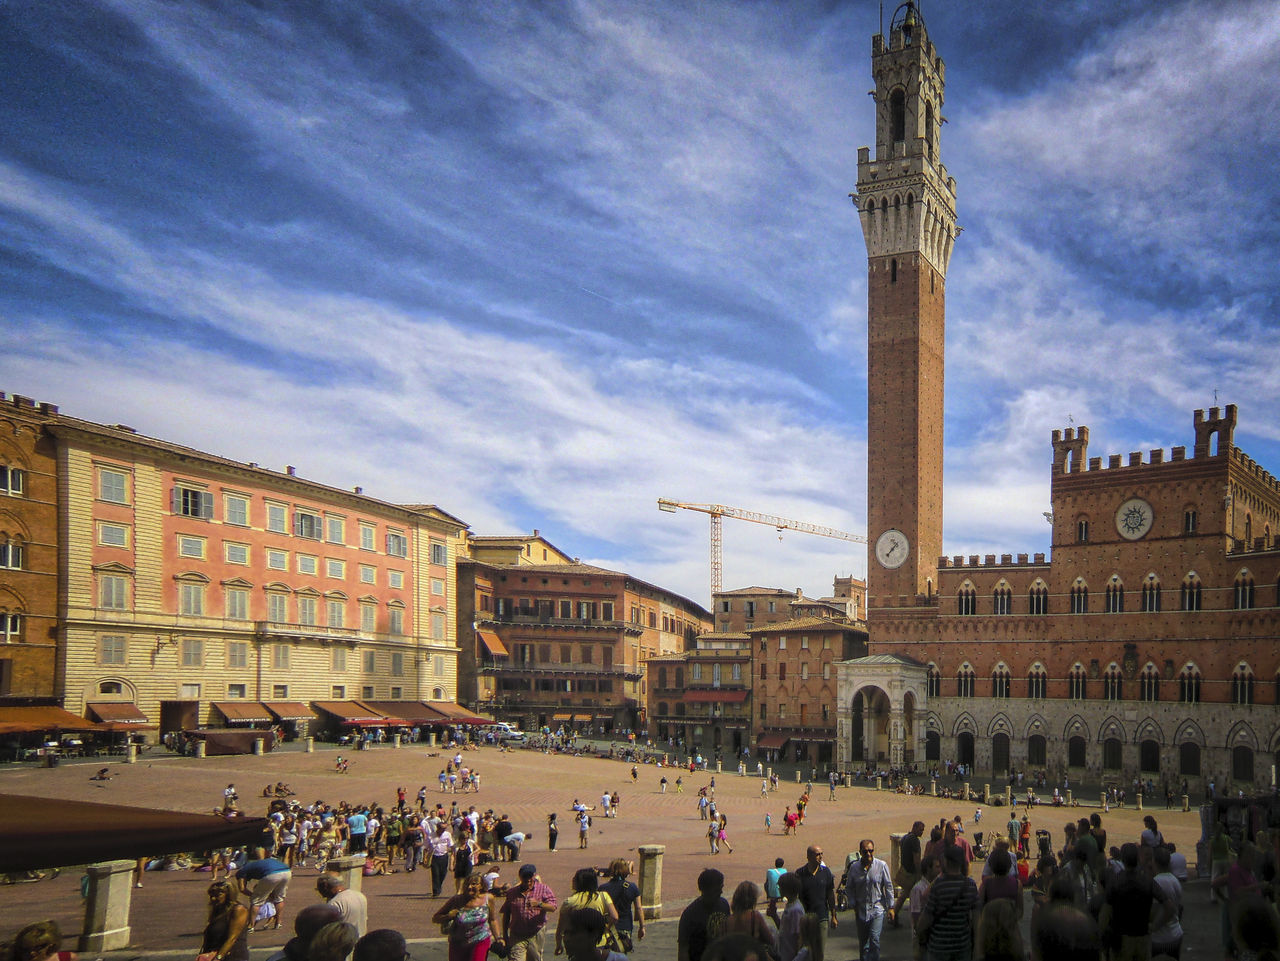 Archaeology Architecture Battle Of The Cities City Cityscape Dramatic Sky Eyeemphoto Eyeemphotography Famous Place Historic City History Medieval Architecture Medieval City My Favorite Place Old Town Palazzo Publico Piazza Del Campo Siena Tourism Tourist Attraction  Town Square Travel Destinations Tuscany UNESCO World Heritage Site